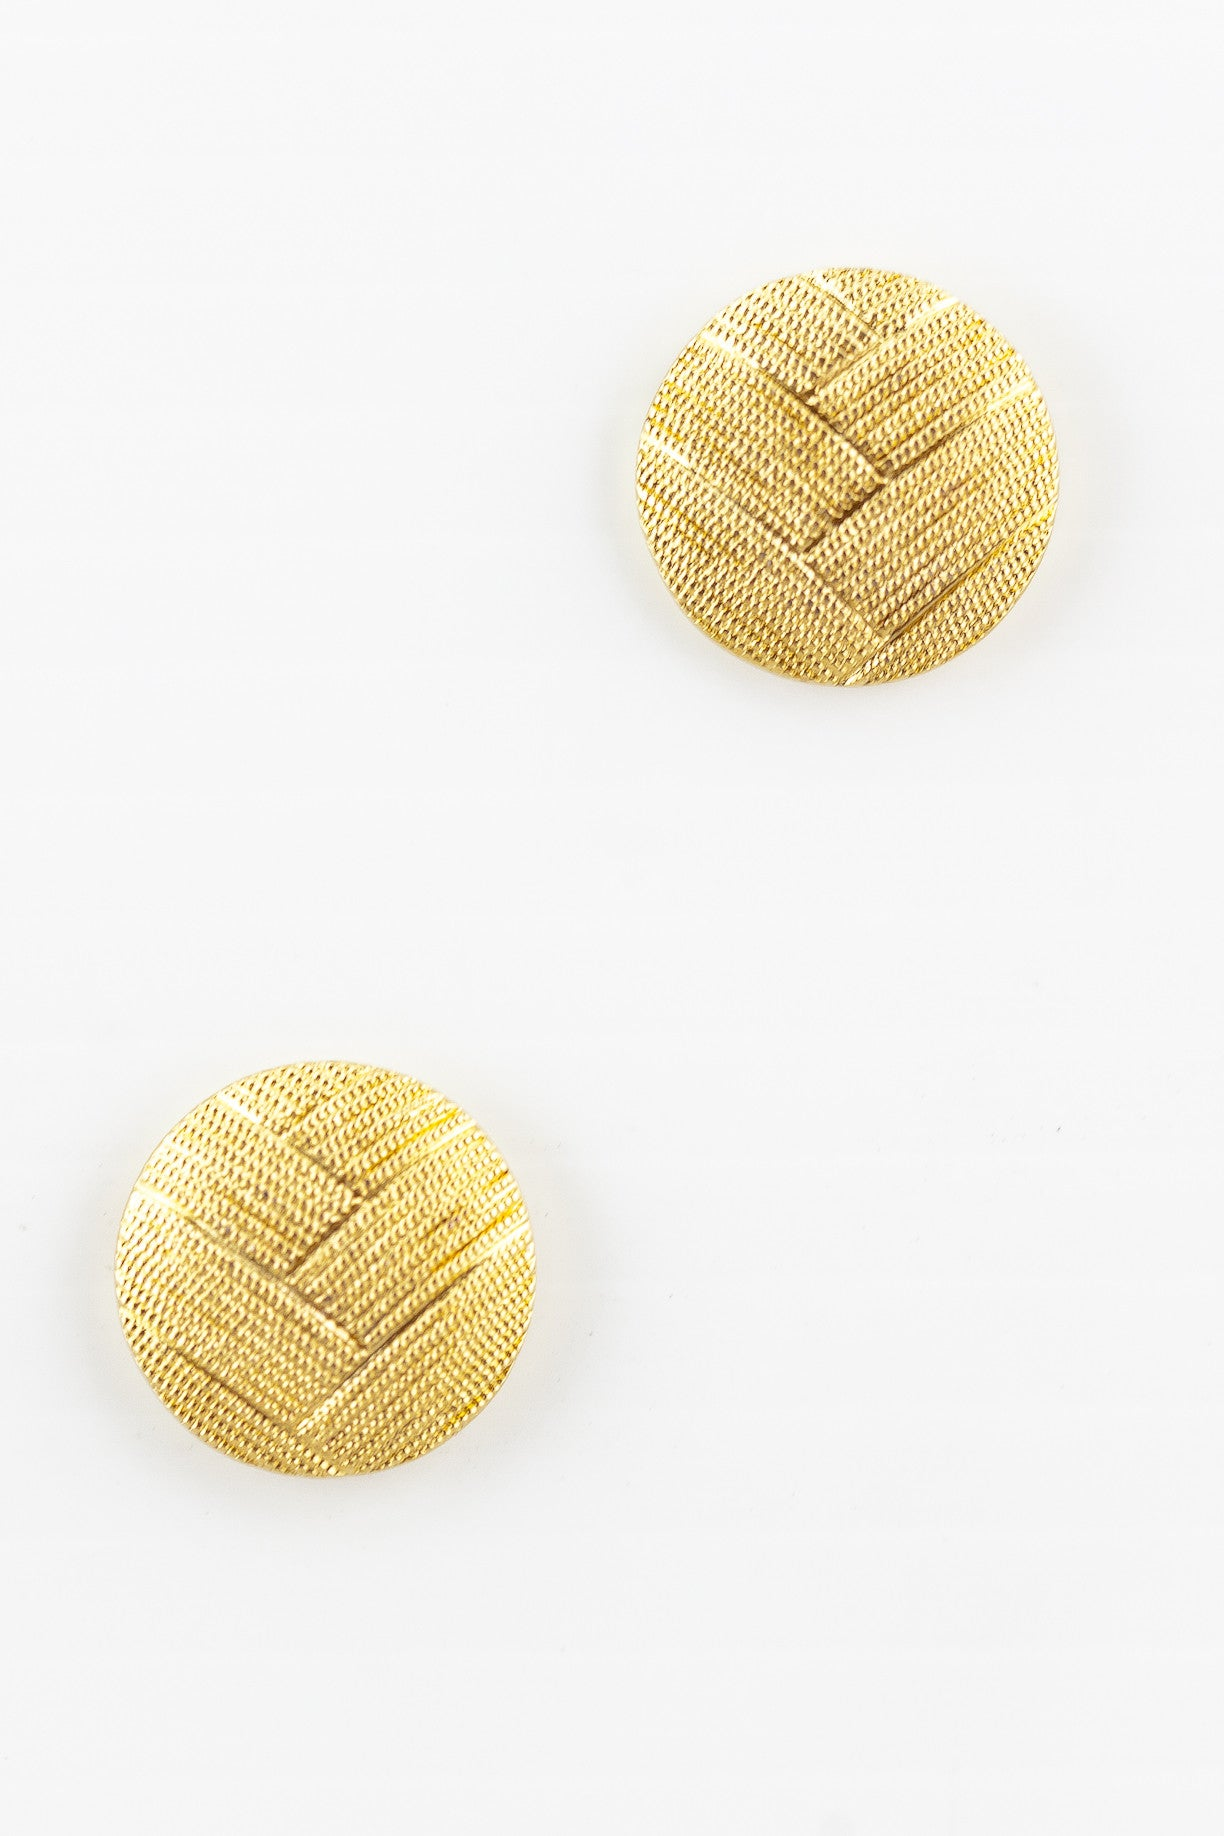 80's__Monet__Etched V Circle Earrings